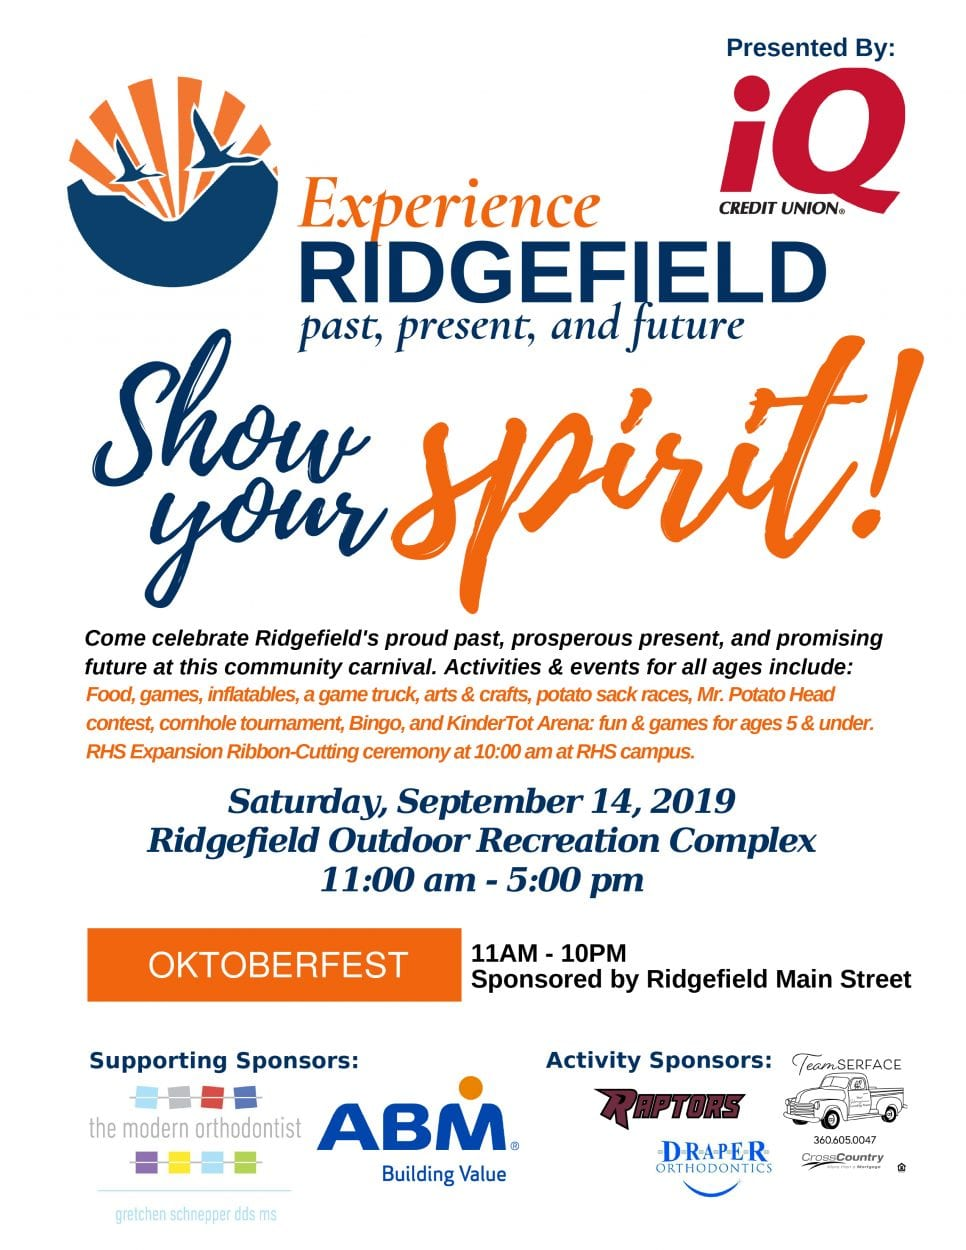 Ridgefield School District hosts Experience Ridgefield on Sat., Sept. 14